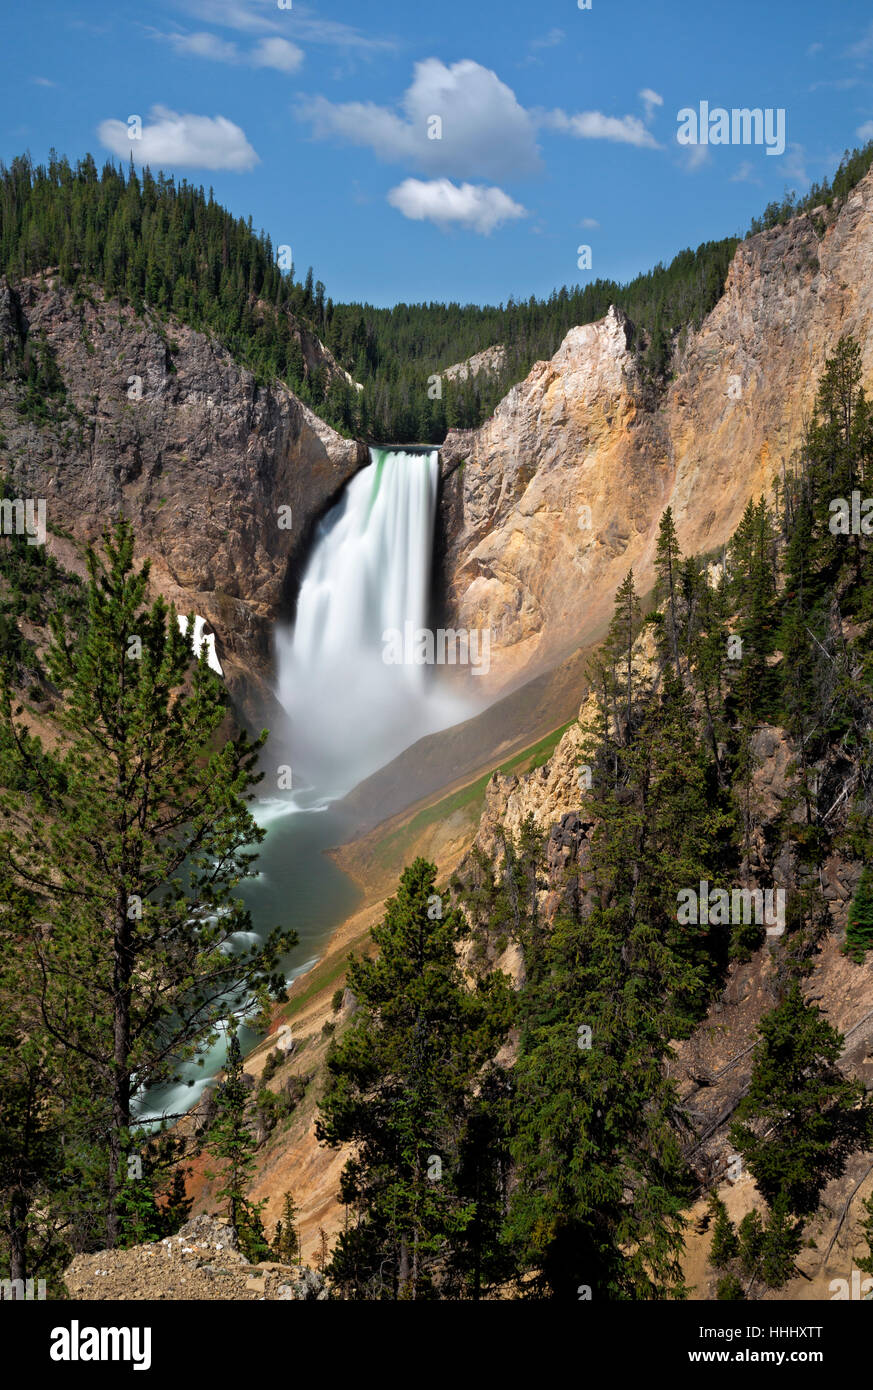 WY02098-00...WASHINGTON - Lower Falls in the Grand Canyon of the Yellowstone River in Yellowstone National Park. - Stock Image